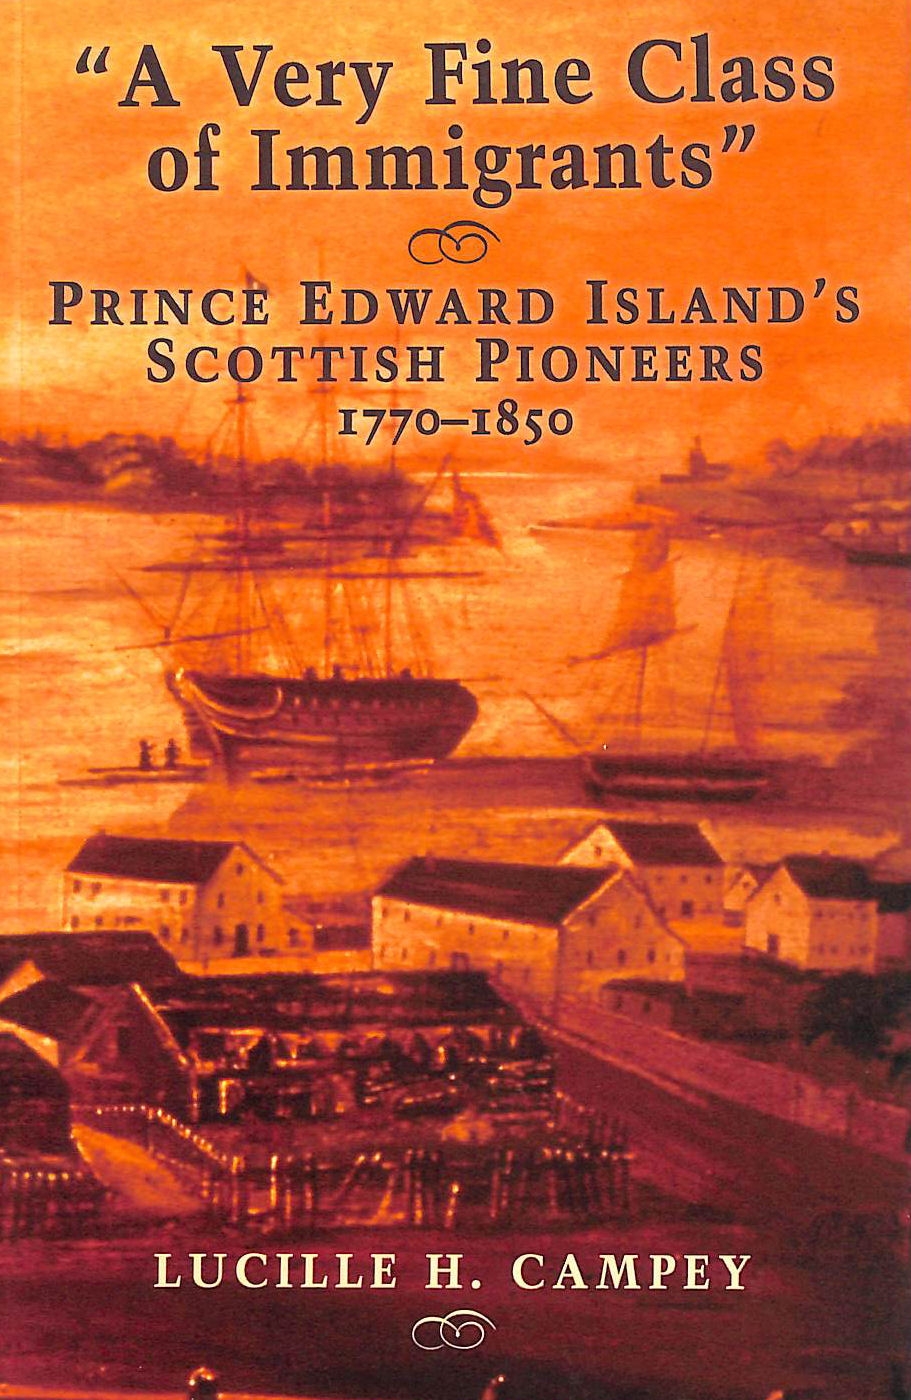 Image for A Very Fine Class of Immigrants: Prince Edward Island's Scottish Pioneers 1770 - 1850